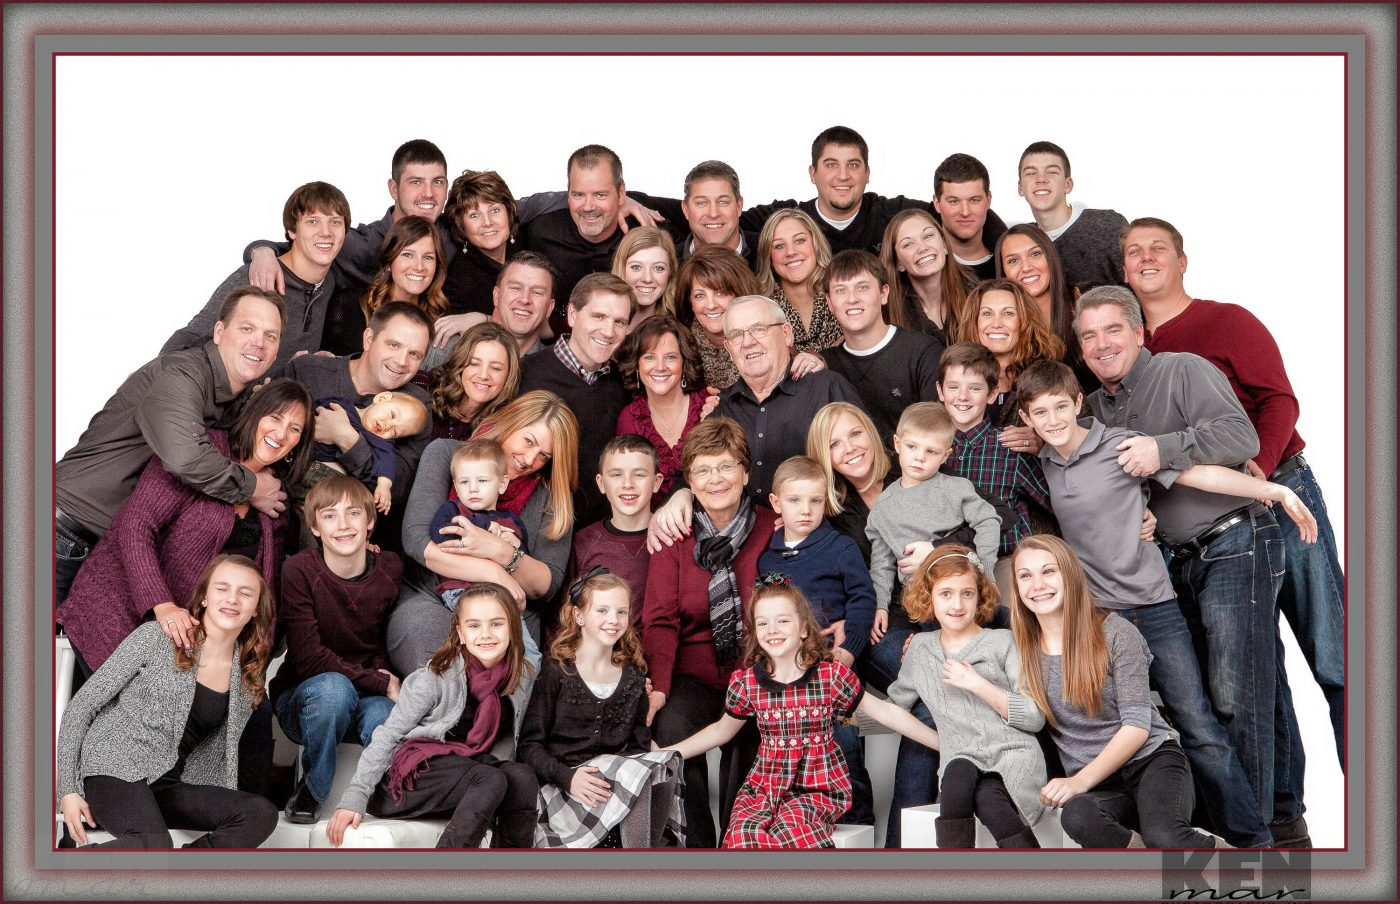 Fourty (40) people comfortably posed for a family grouping in the studio. Specialists in large family groups.